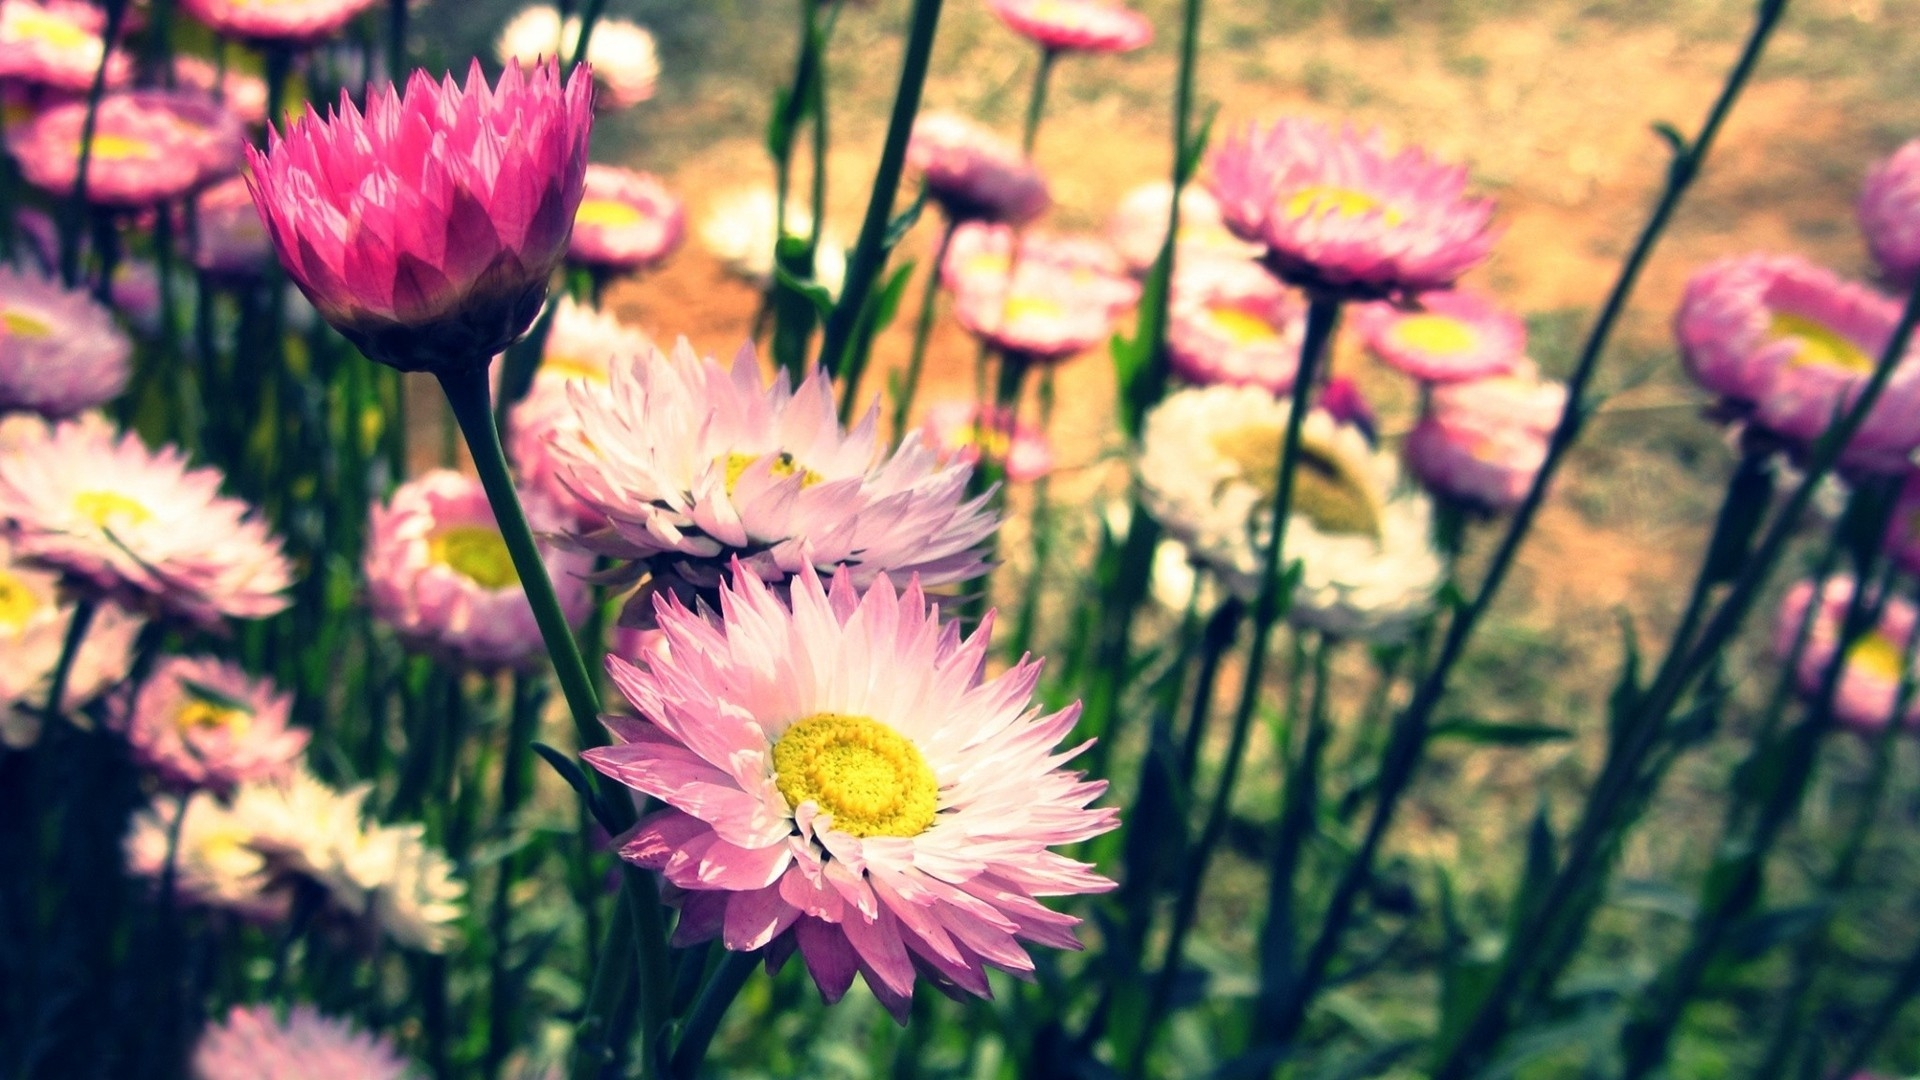 Flowers  vintage photo   Photography   Screen  HD Wallpaper